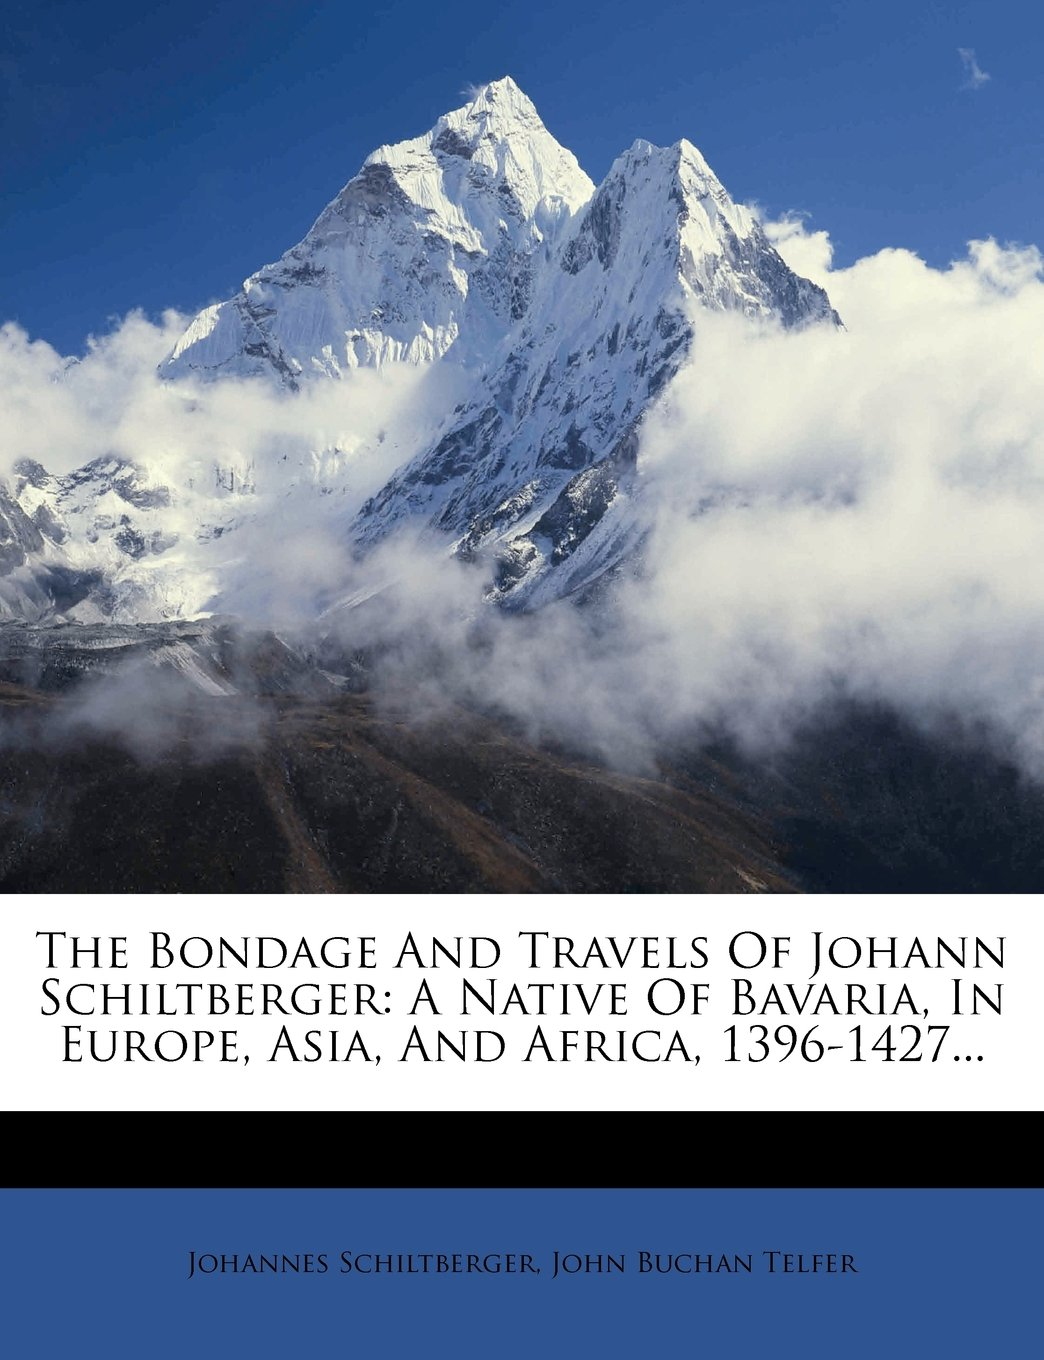 Download The Bondage And Travels Of Johann Schiltberger: A Native Of Bavaria, In Europe, Asia, And Africa, 1396-1427... ebook